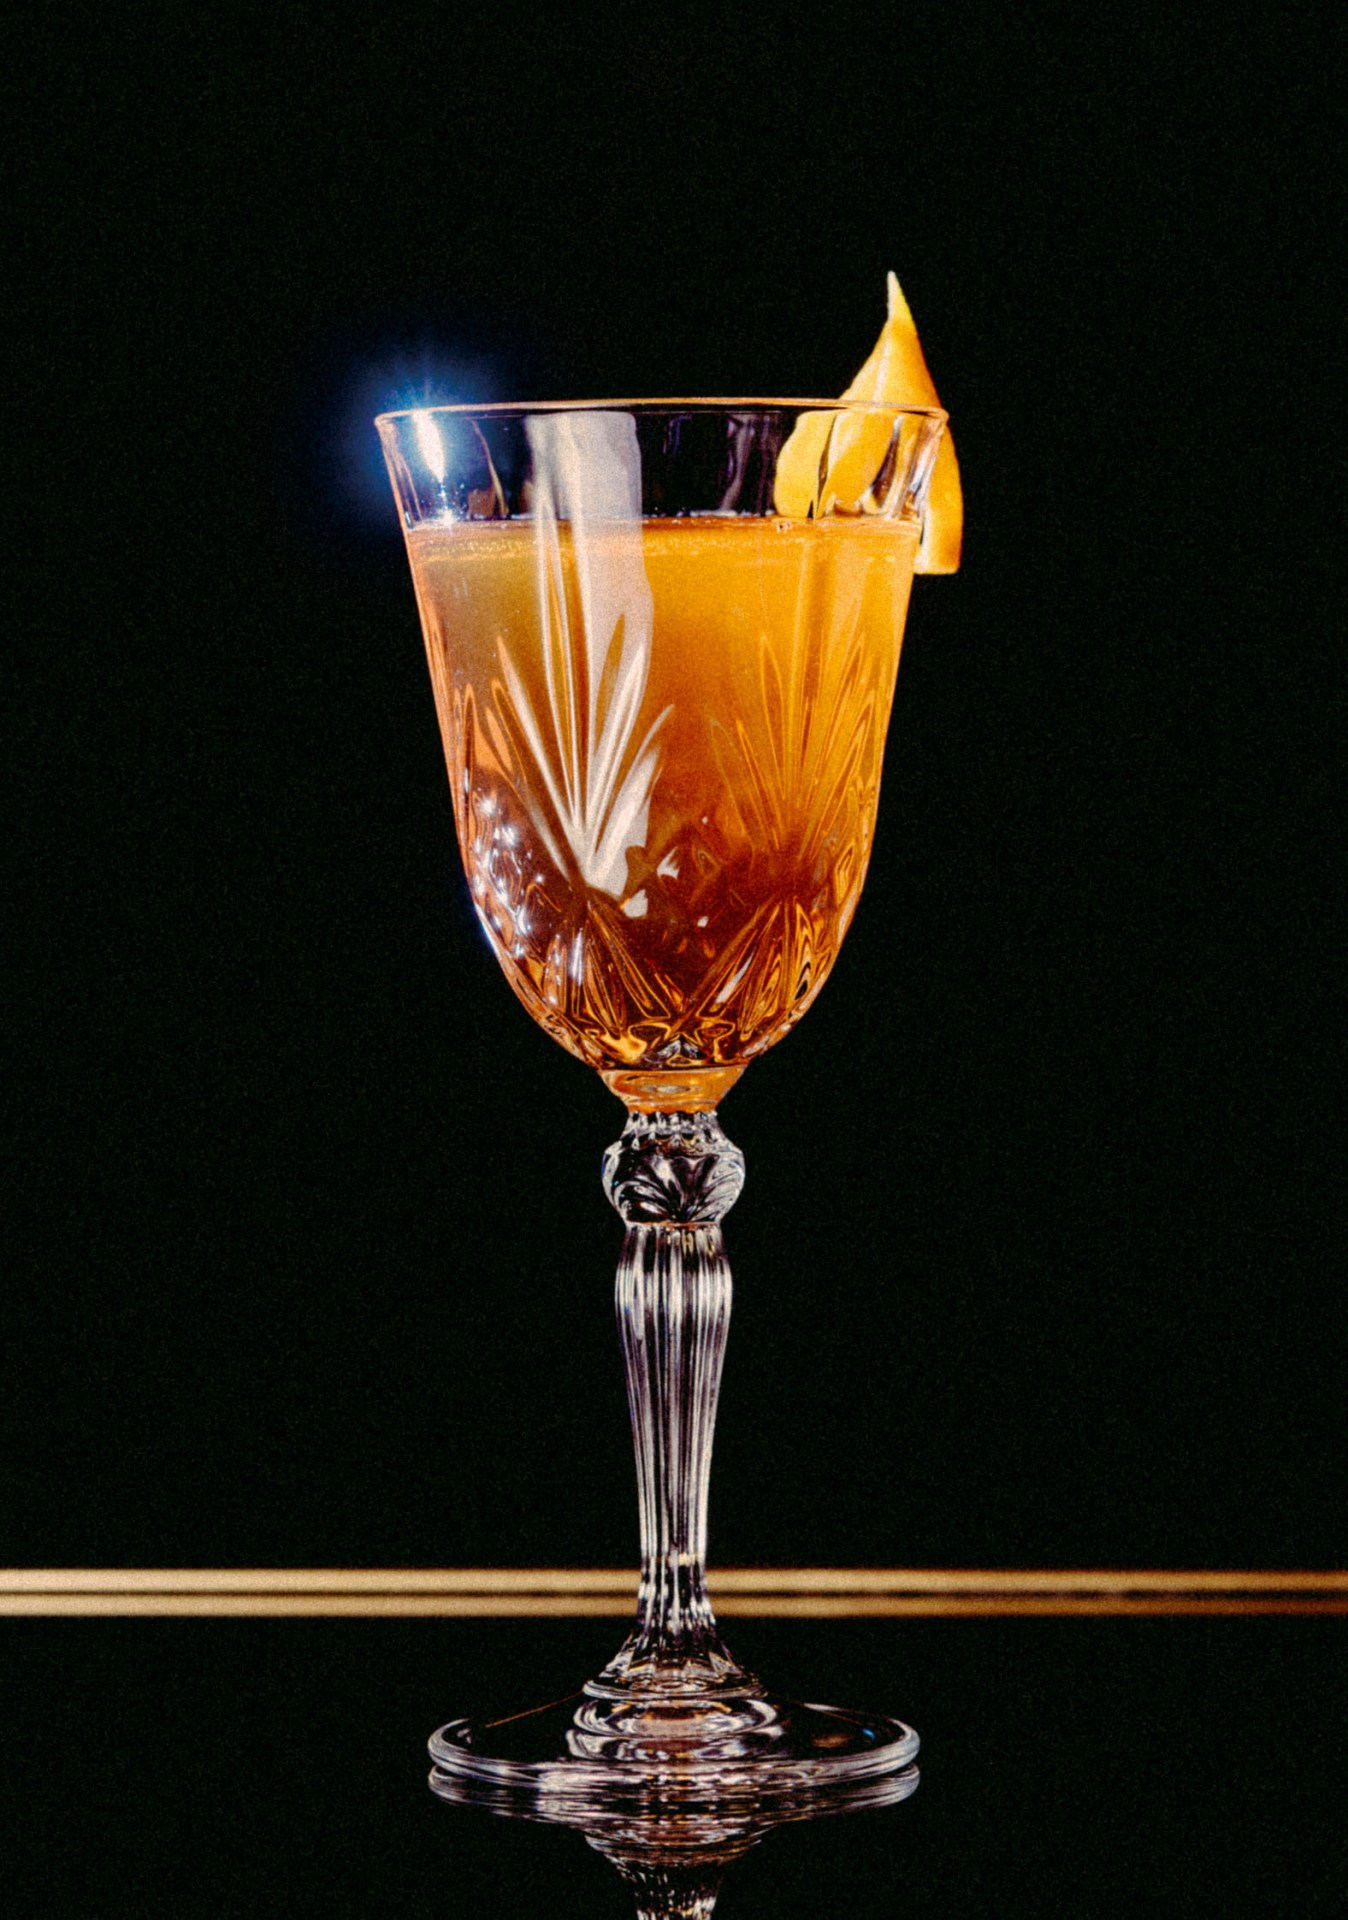 Recipe: 3cl Rittenhouse Rye 3cl Martell V.S.O.P 7 Dashes Peychaud's Bitters 1 Barspoon Cane Sugar 4 Absinthe Sprayers